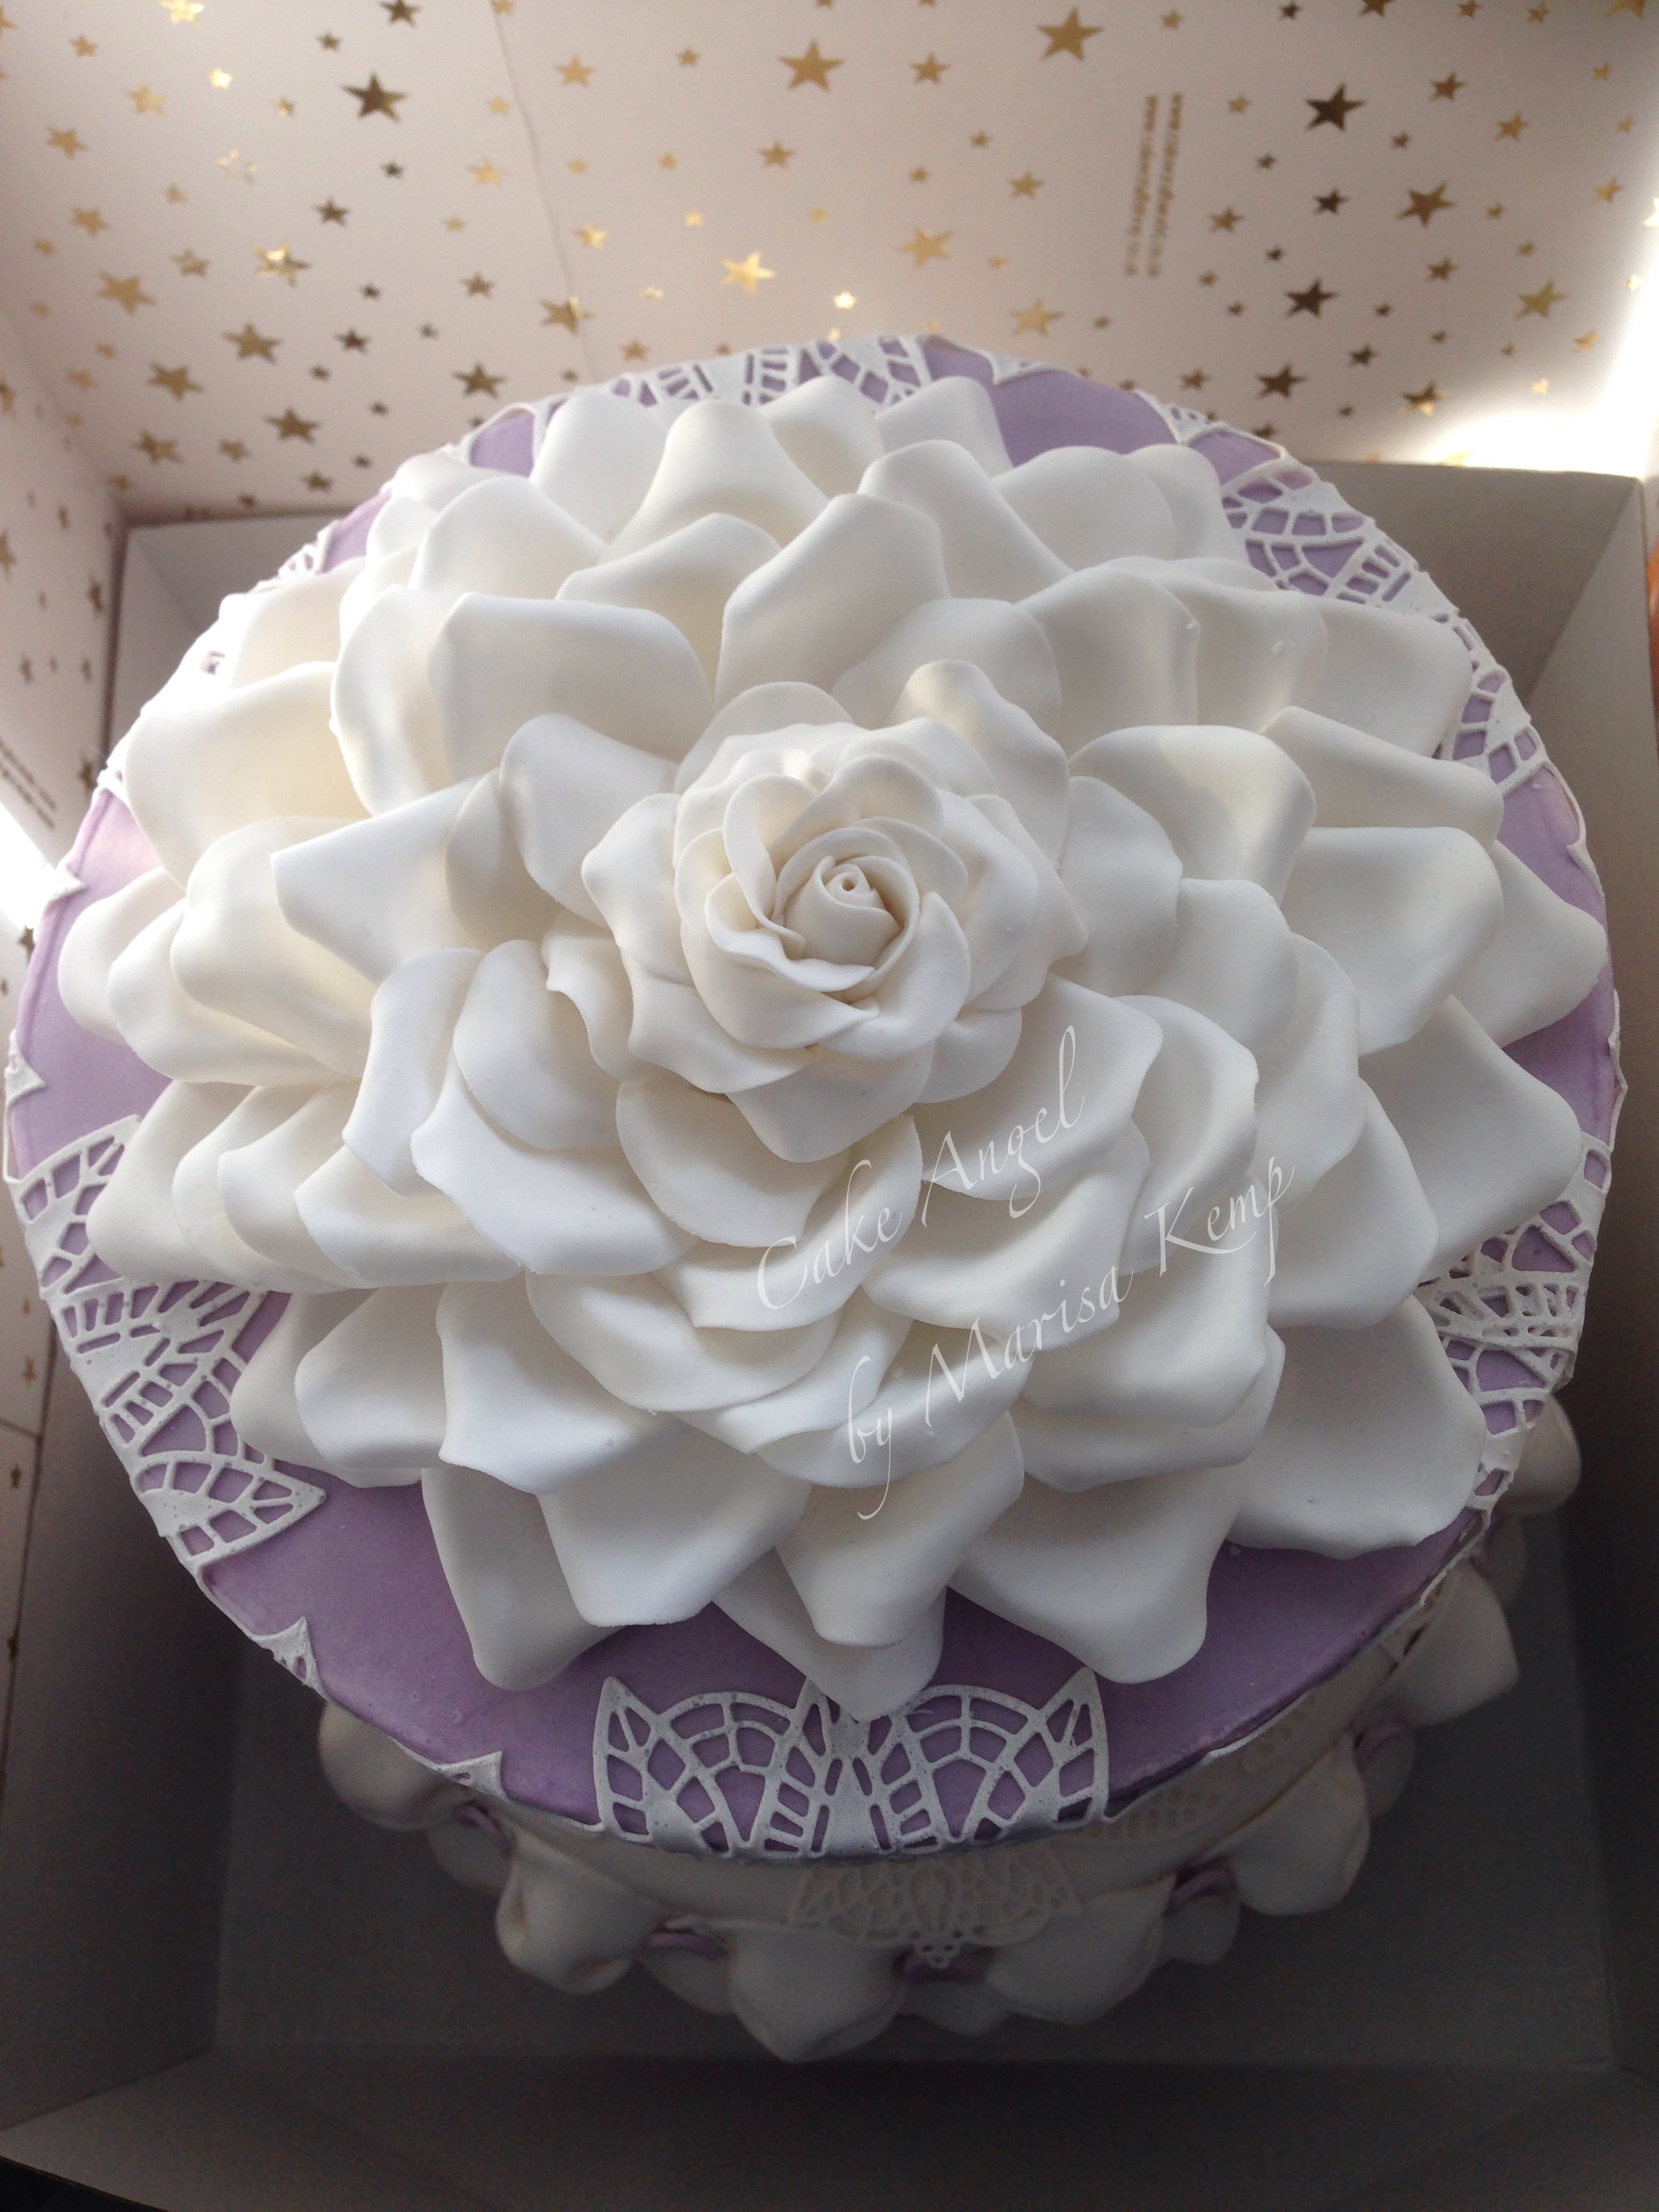 Large white rose topper